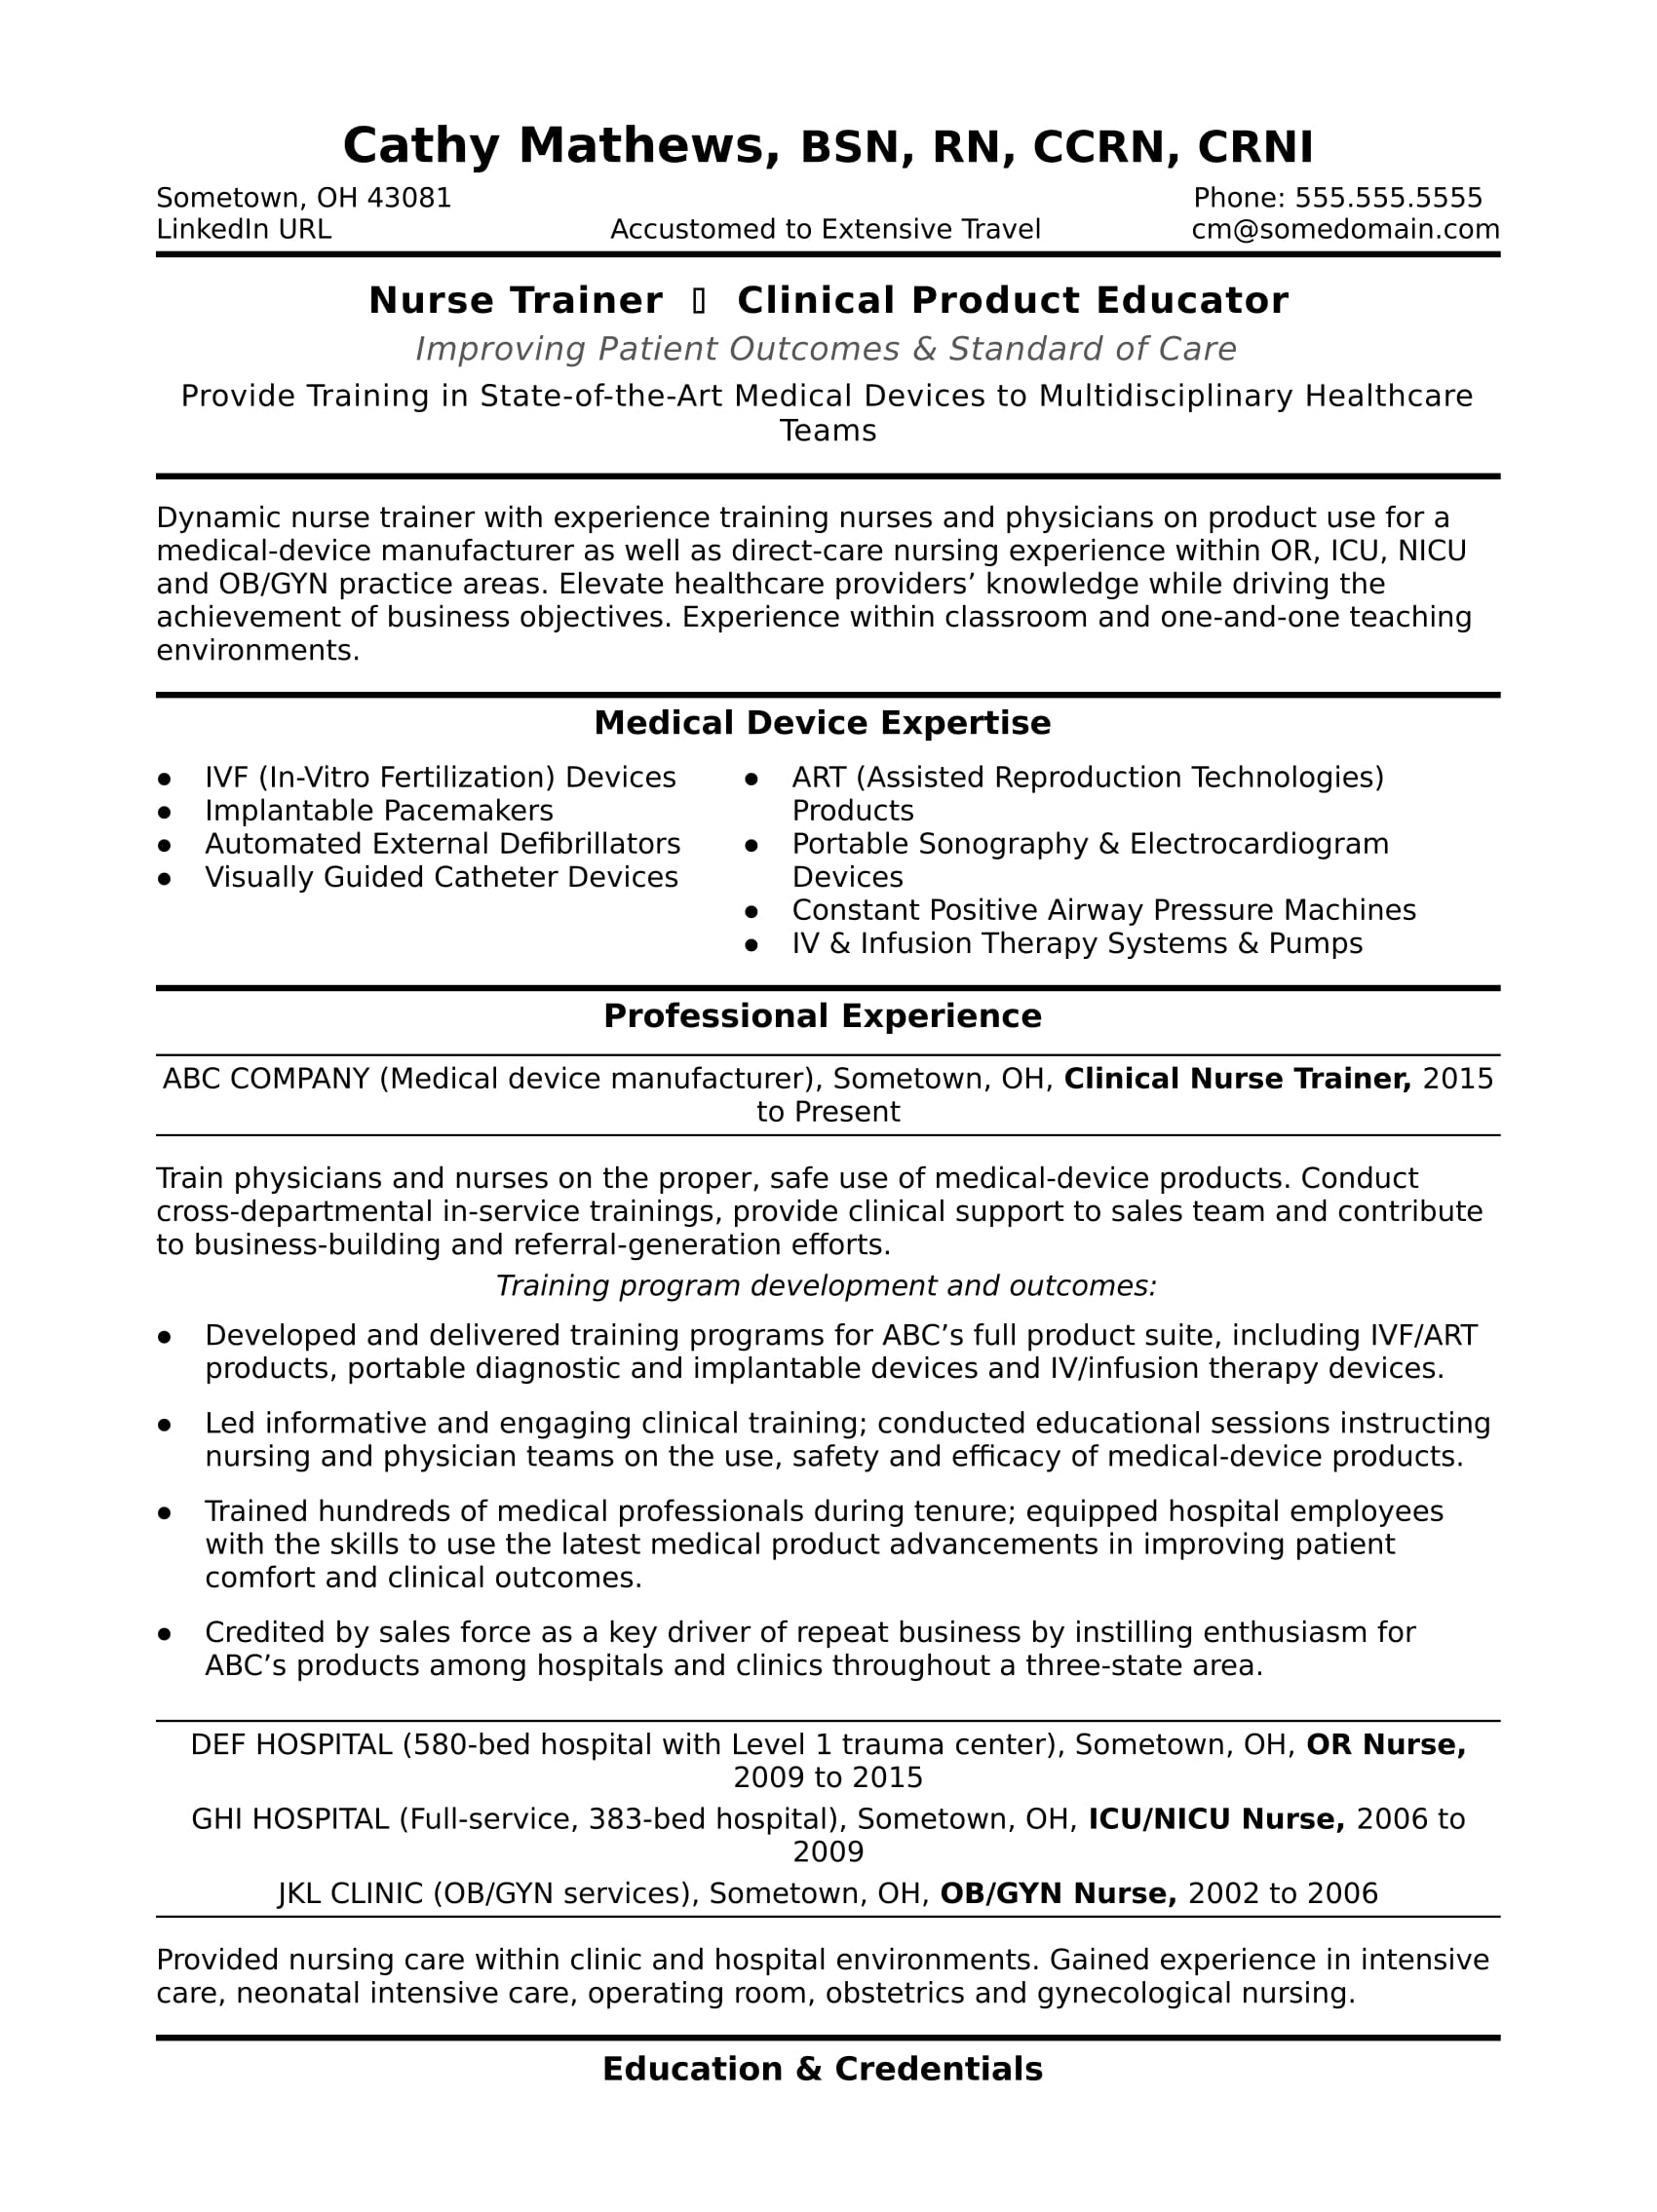 Sample Resume For A Nurse Trainer  Trainer Resume